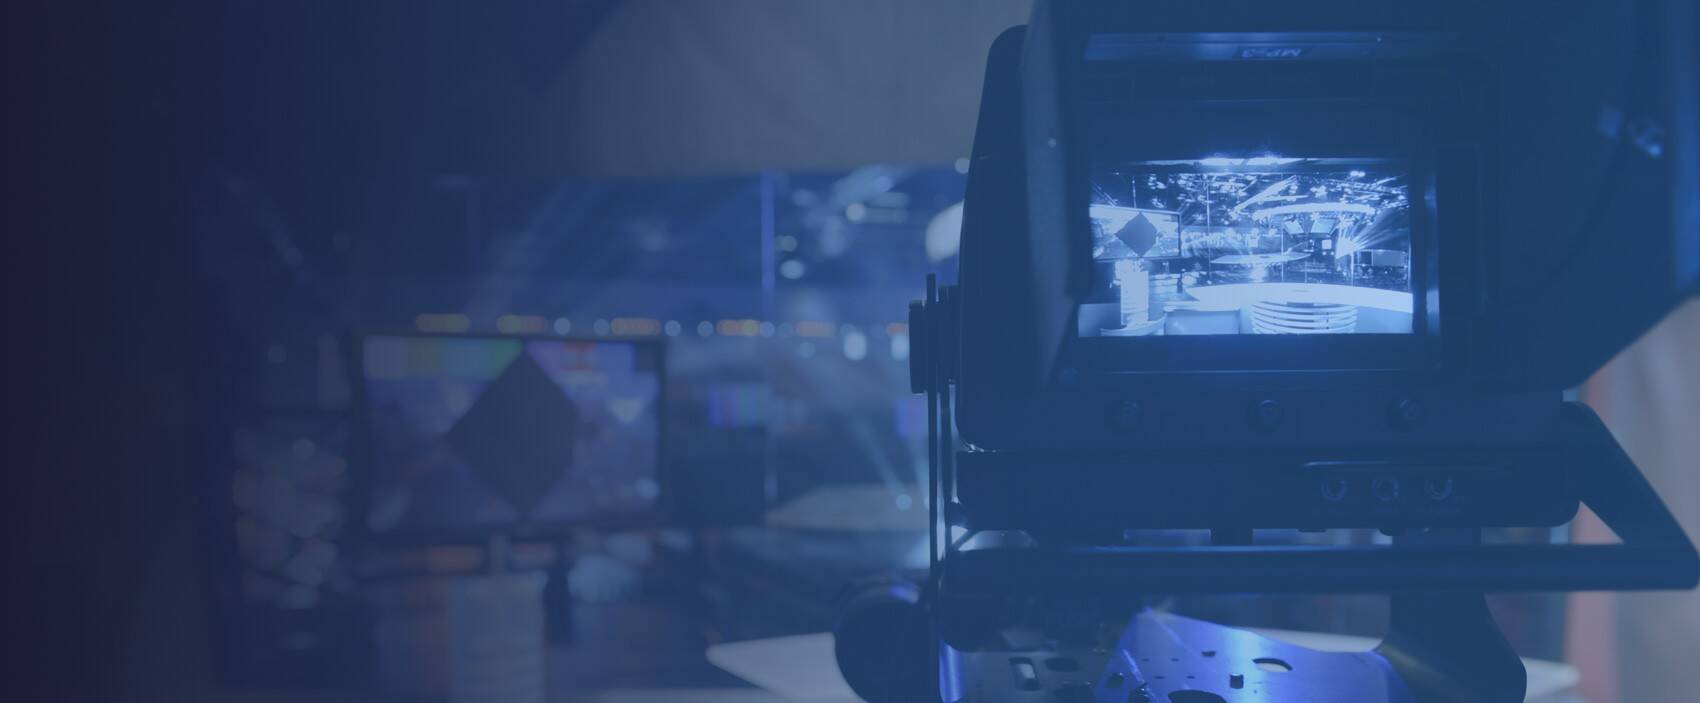 image of a camera on a broadcast set